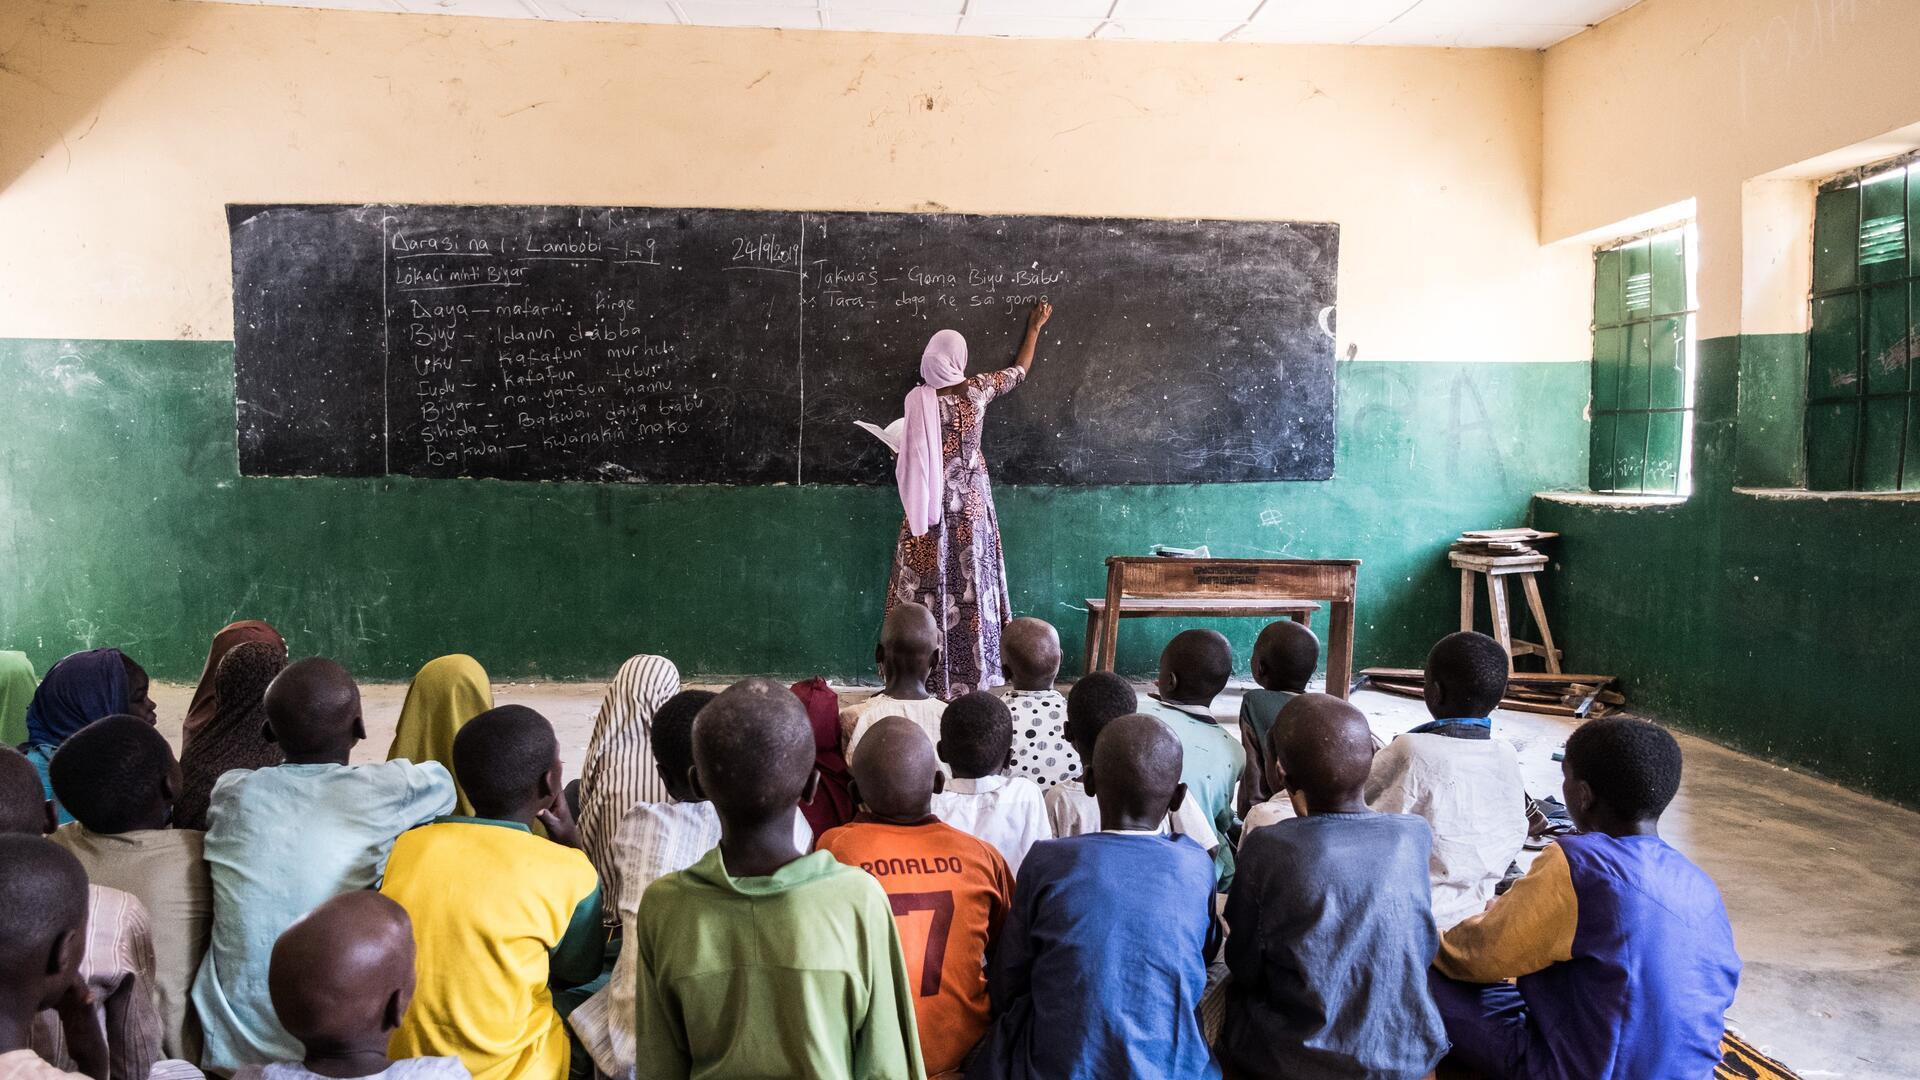 International Rescue Committee teacher Fatima writes on a blackboard in the front of her classroom.